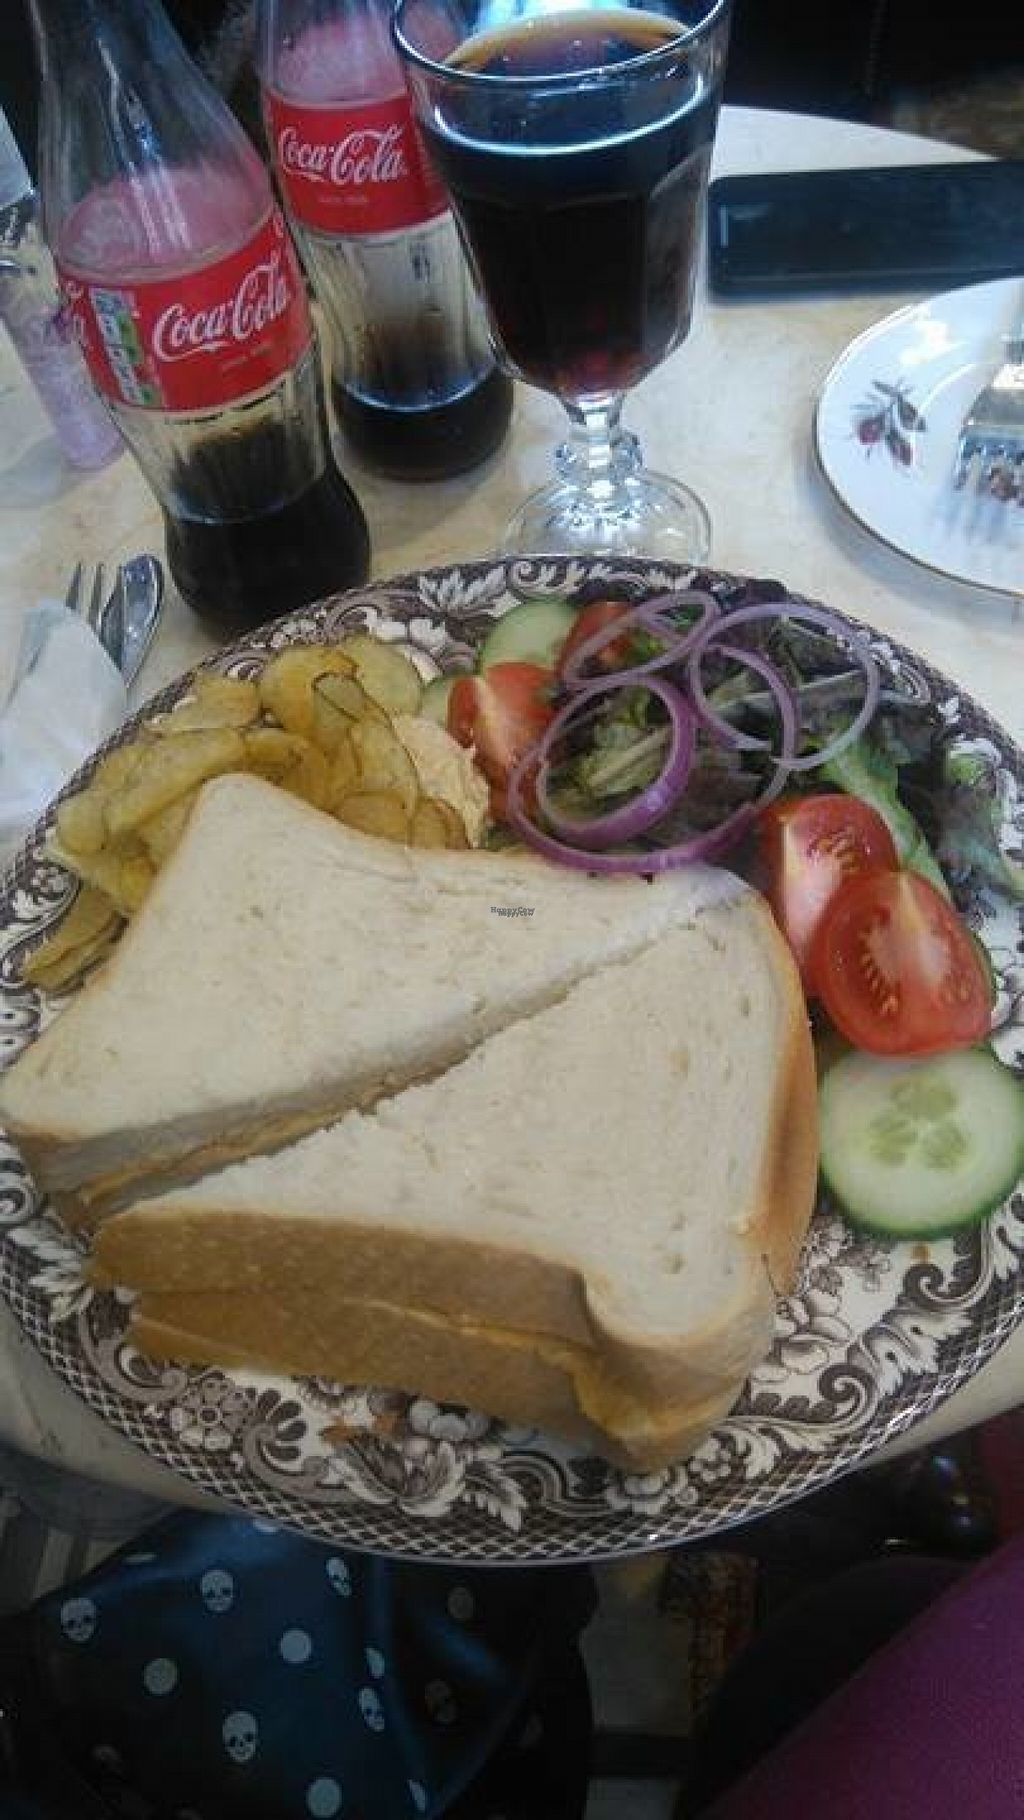 """Photo of Curious Cats  by <a href=""""/members/profile/EmmaChadwick"""">EmmaChadwick</a> <br/>This was a shiitake mushroom pate sandwhich. Labled as vegan, they had a lot a few labled vegan/veggie foods on their menu. They know their audience lol. The cats roam about but the food is served covered like a fancy cake is in a dome. So if you're that fussy, you can cover it if a cat jumps on the table. Hand sanitiser on each table too :). The food was nice & unexpected too, it's nice when you come across a place that caters to vegans <br/> August 15, 2016  - <a href='/contact/abuse/image/78593/168934'>Report</a>"""